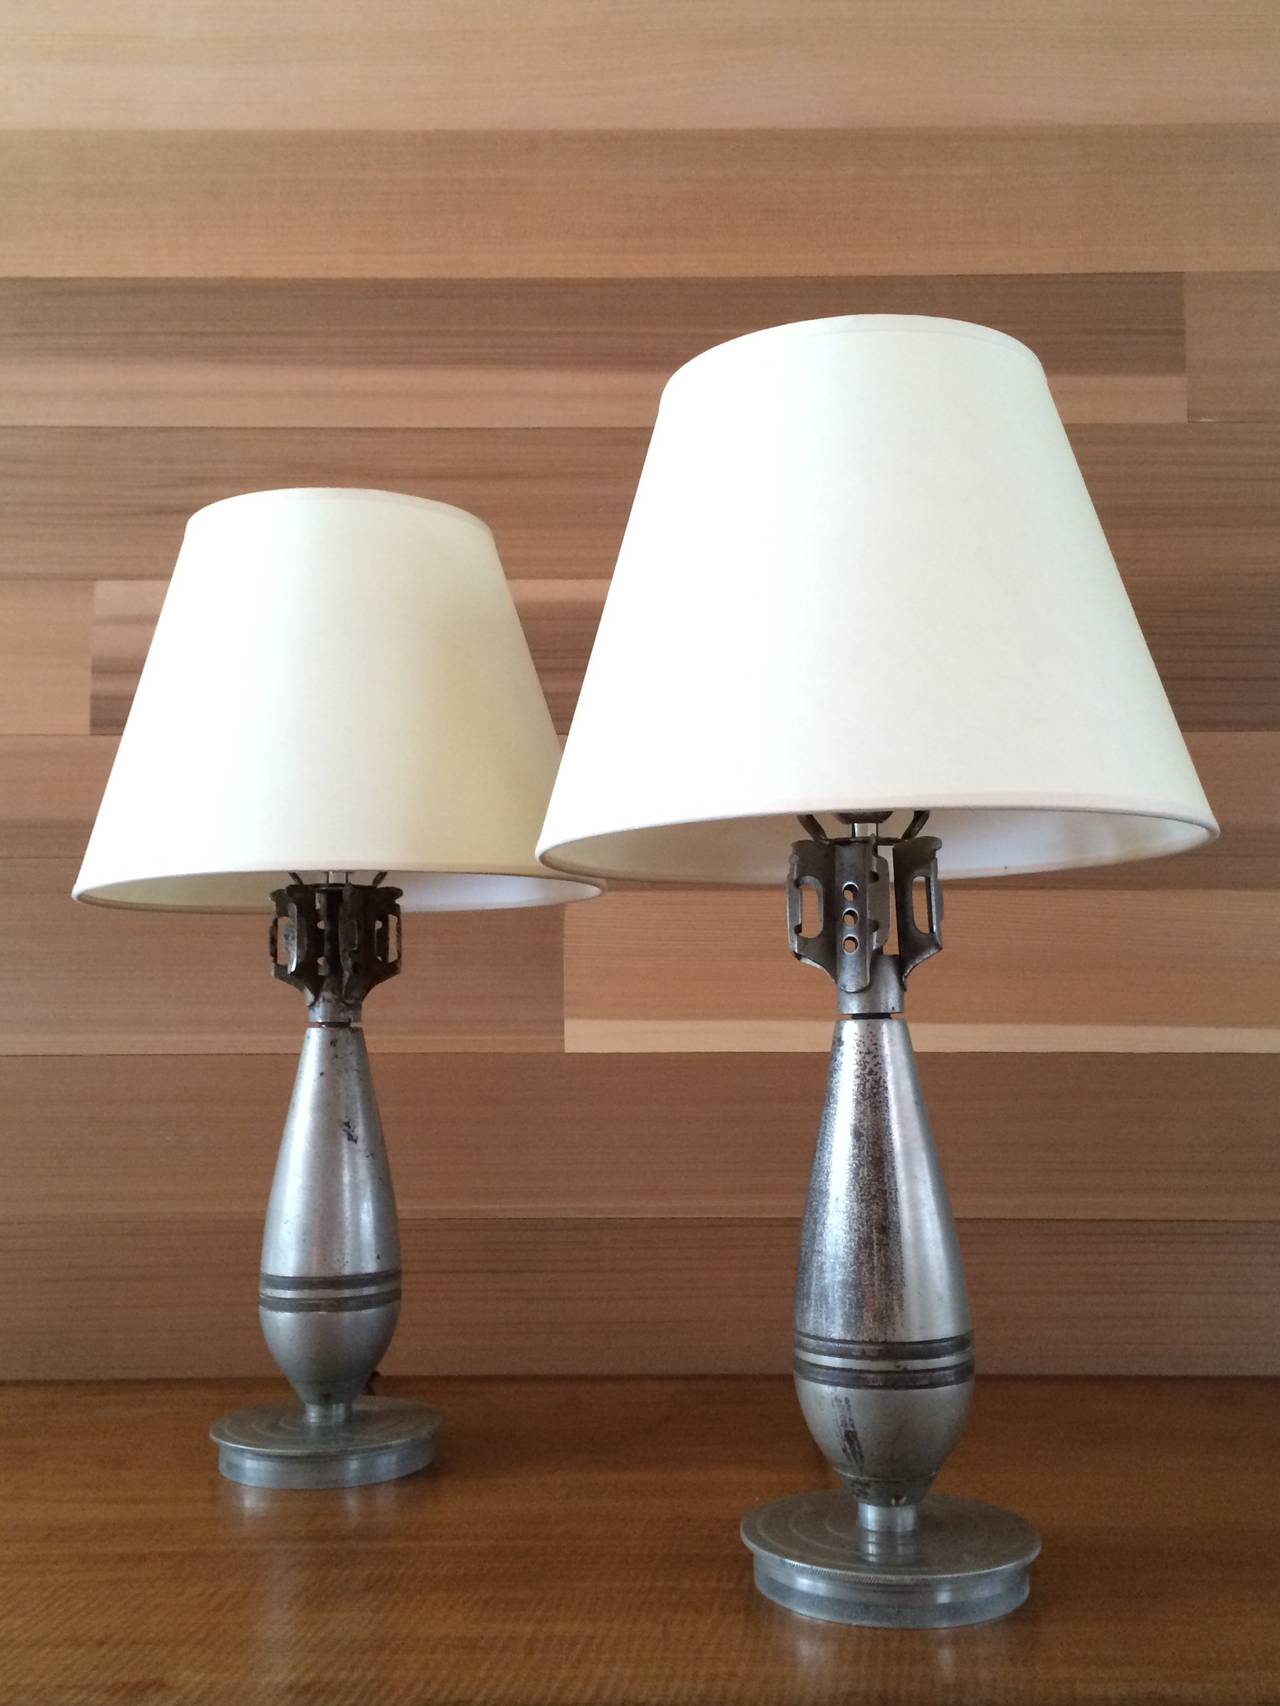 Pair of M43 Bomb Table Lamps, 1940 at 1stdibs